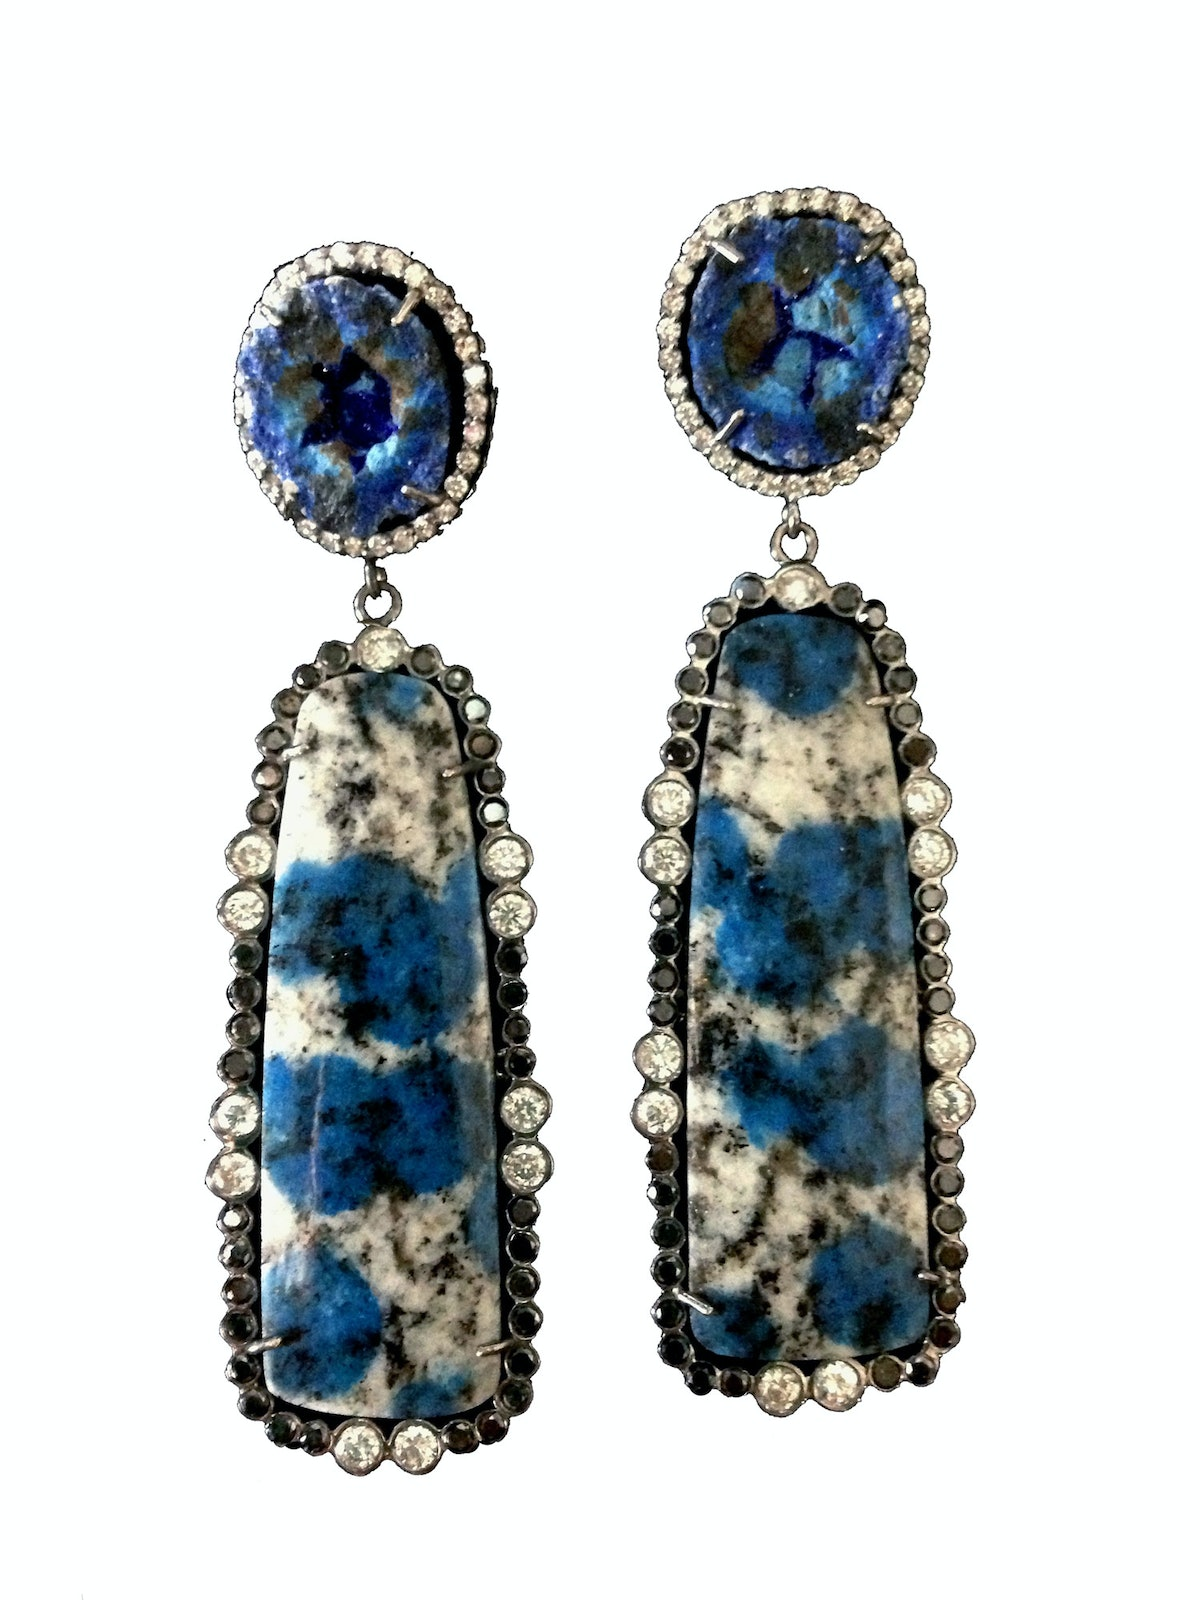 Colette gold, azurite, and diamond earrings